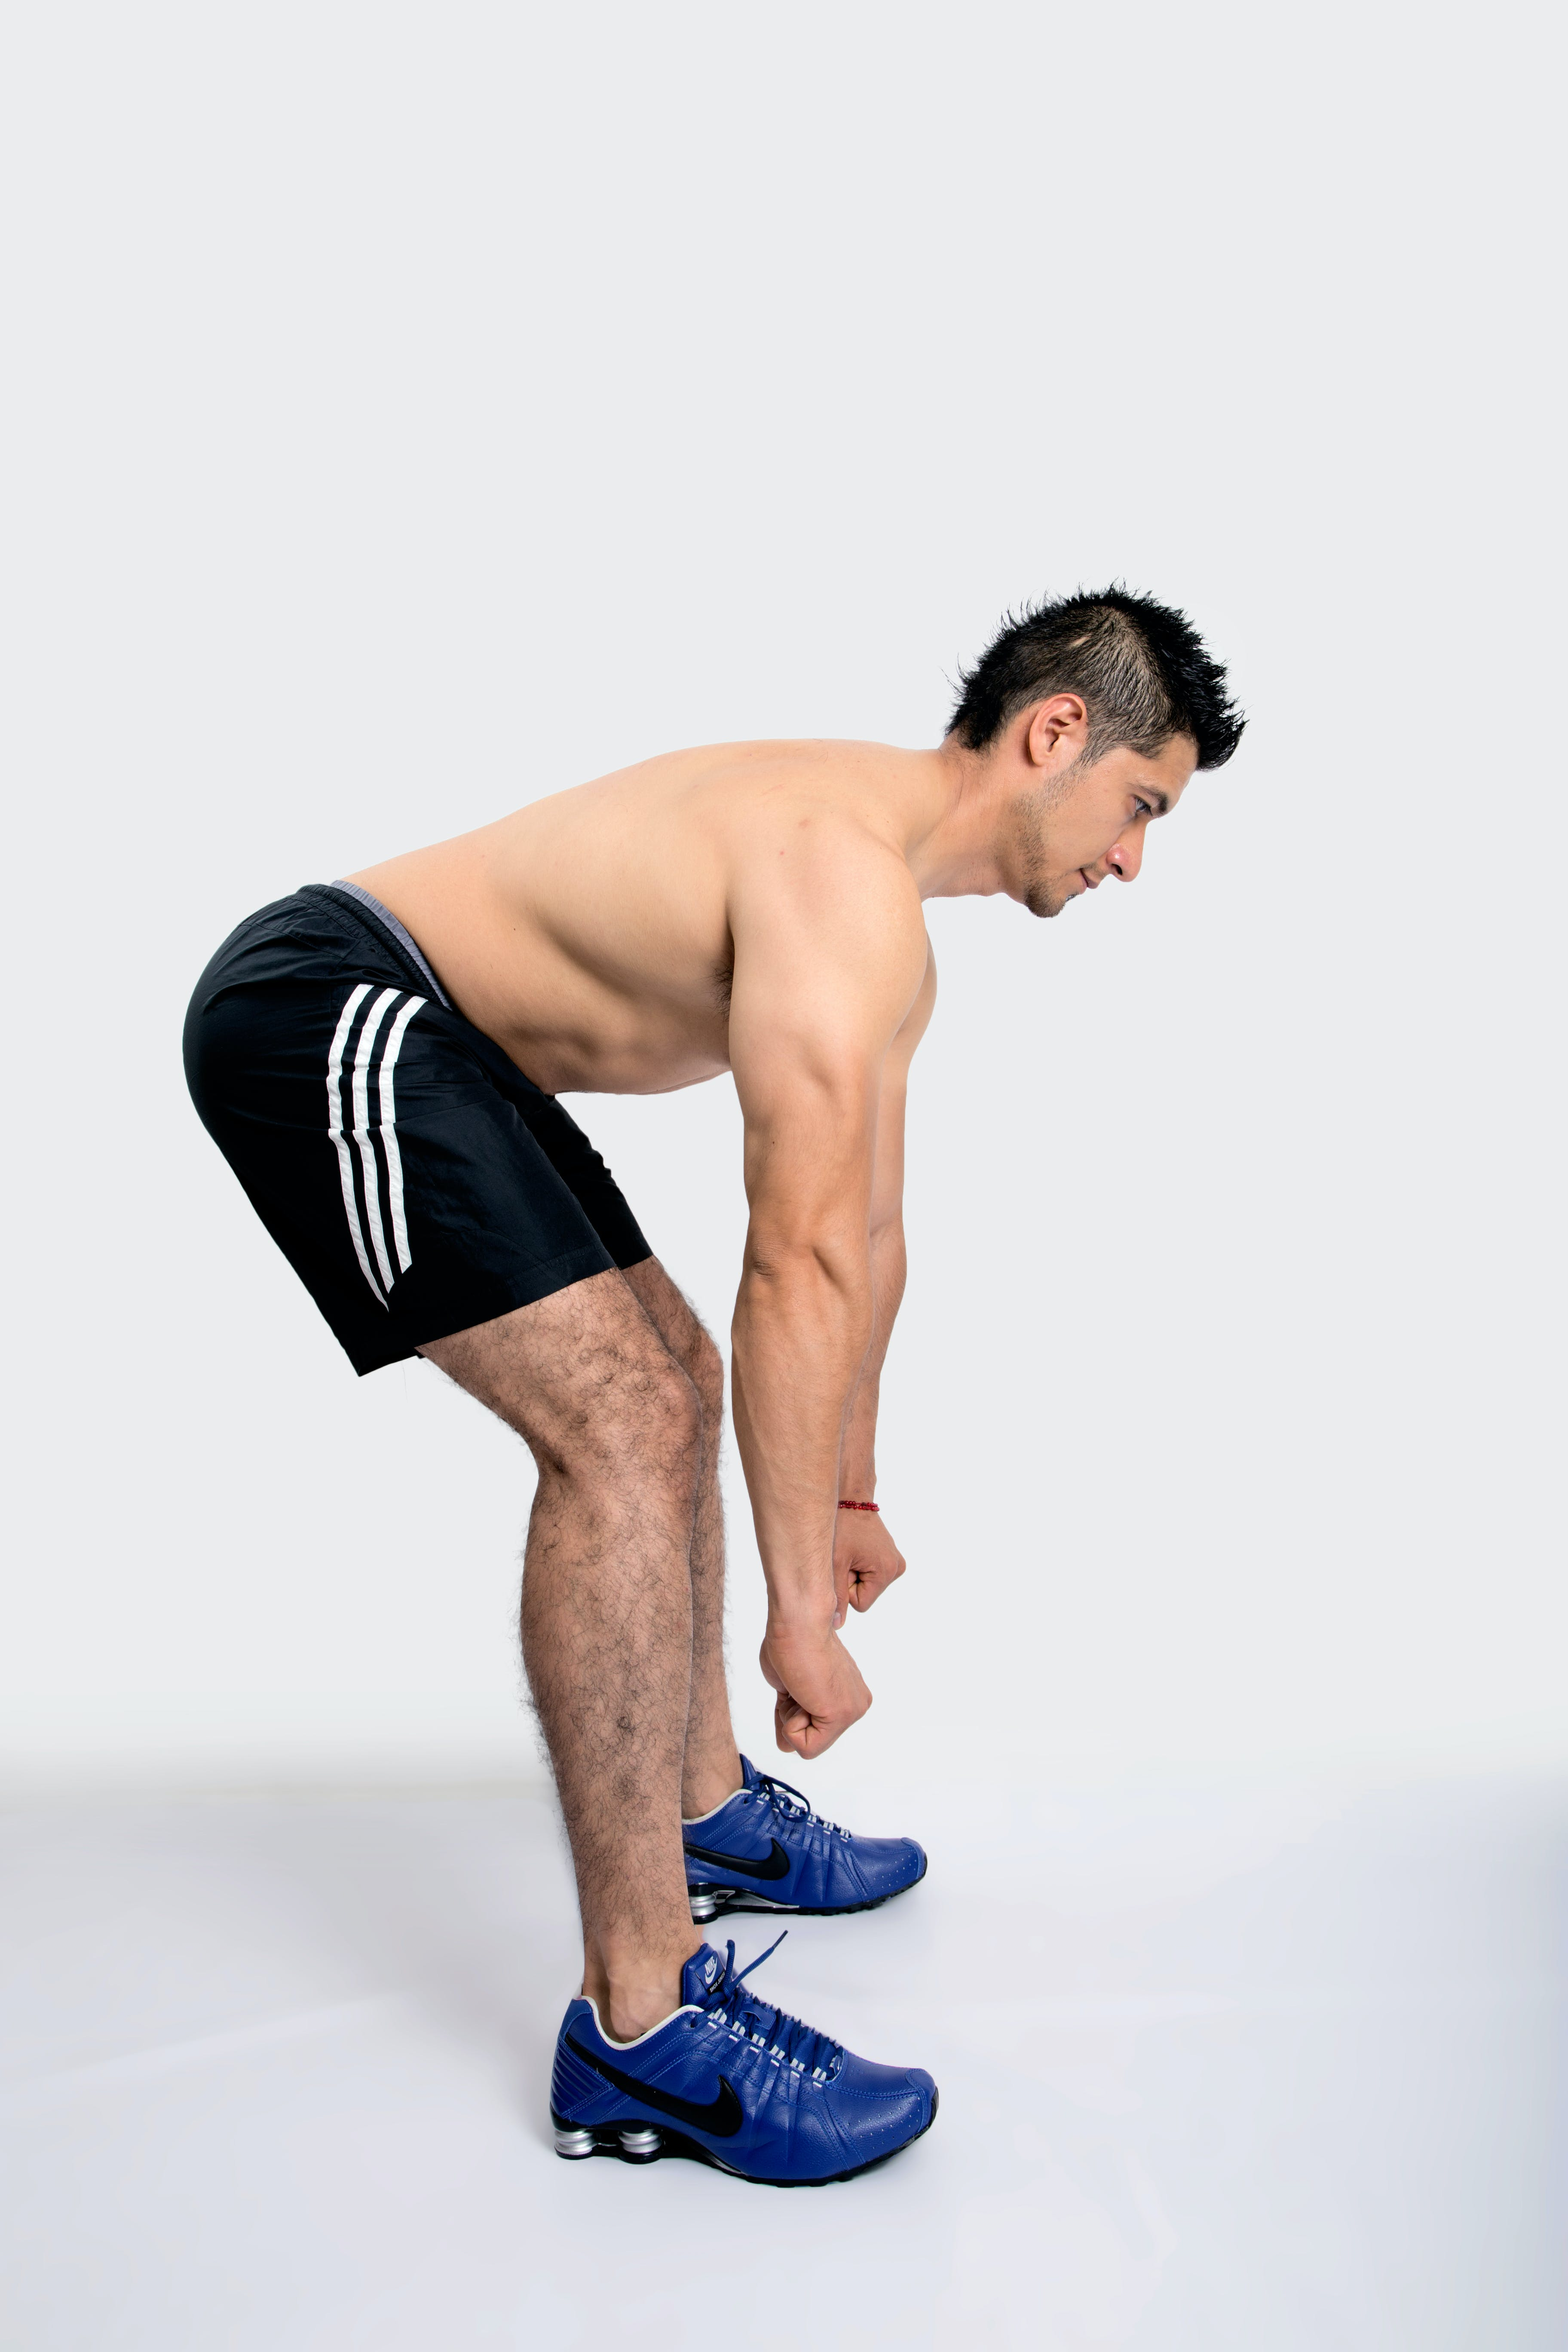 Free stock photo of butt, coach, exercise, fitness